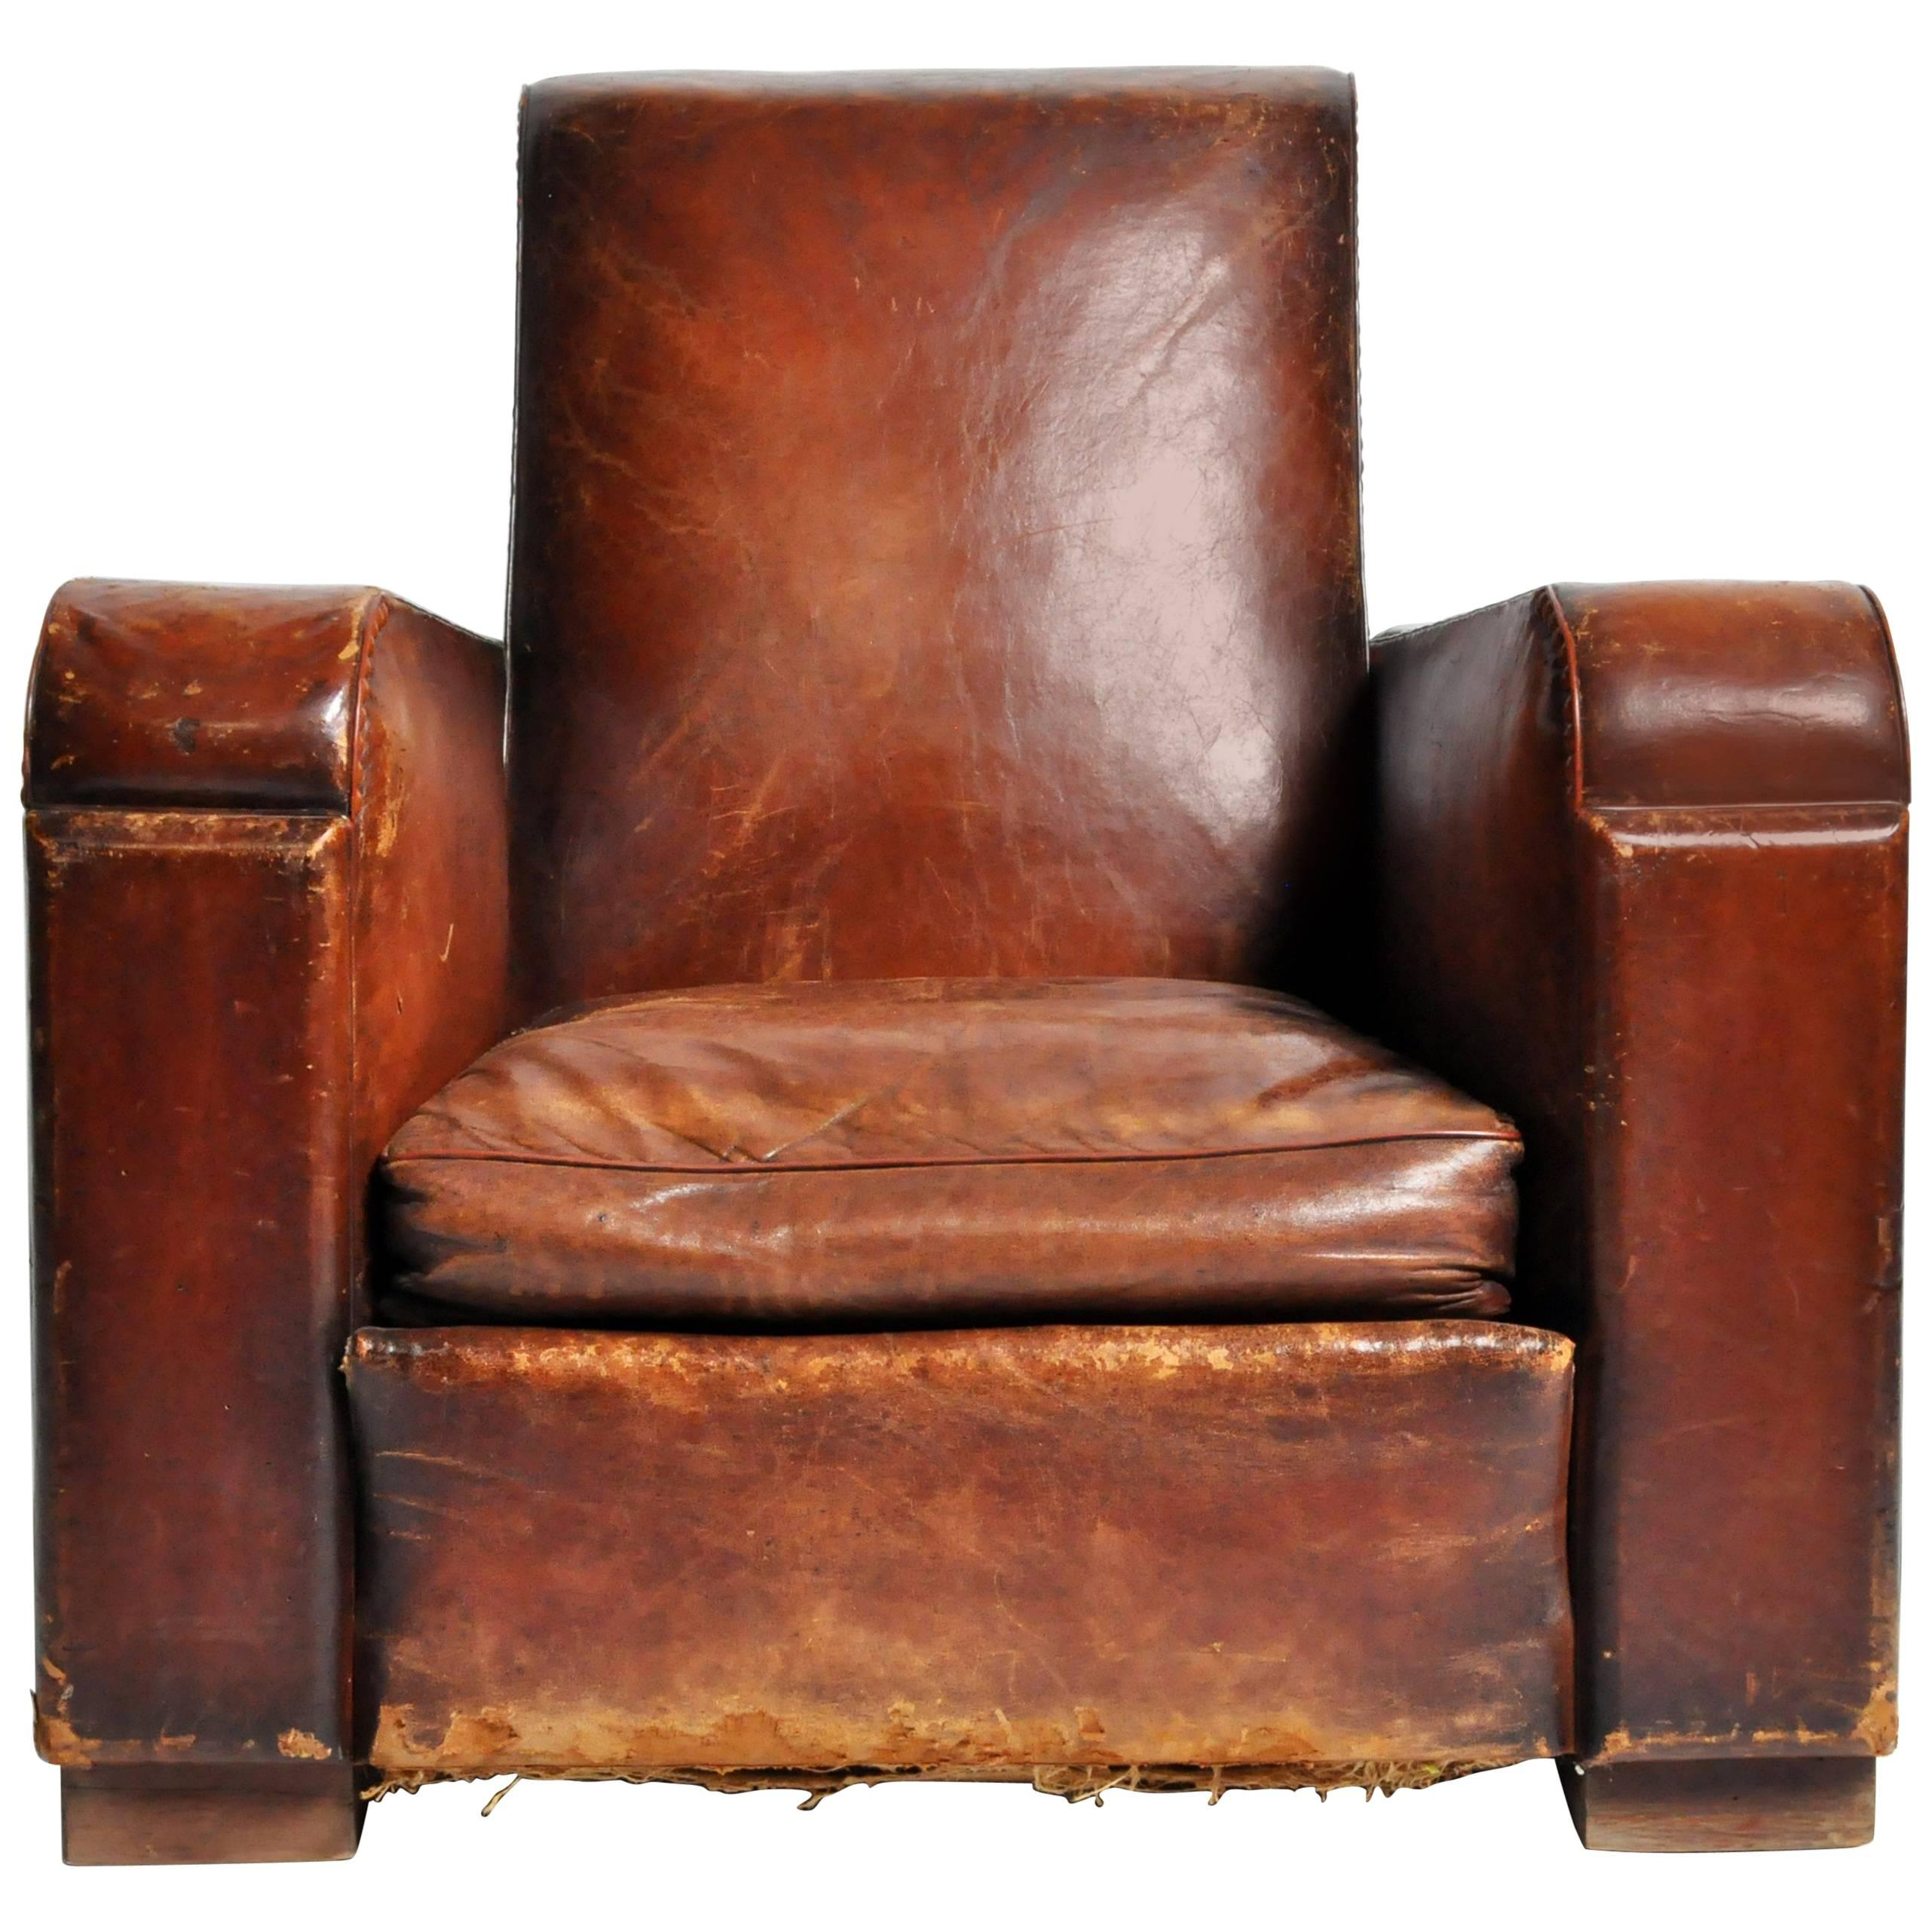 Art Deco French Leather Club Chair With Original Patina For Sale